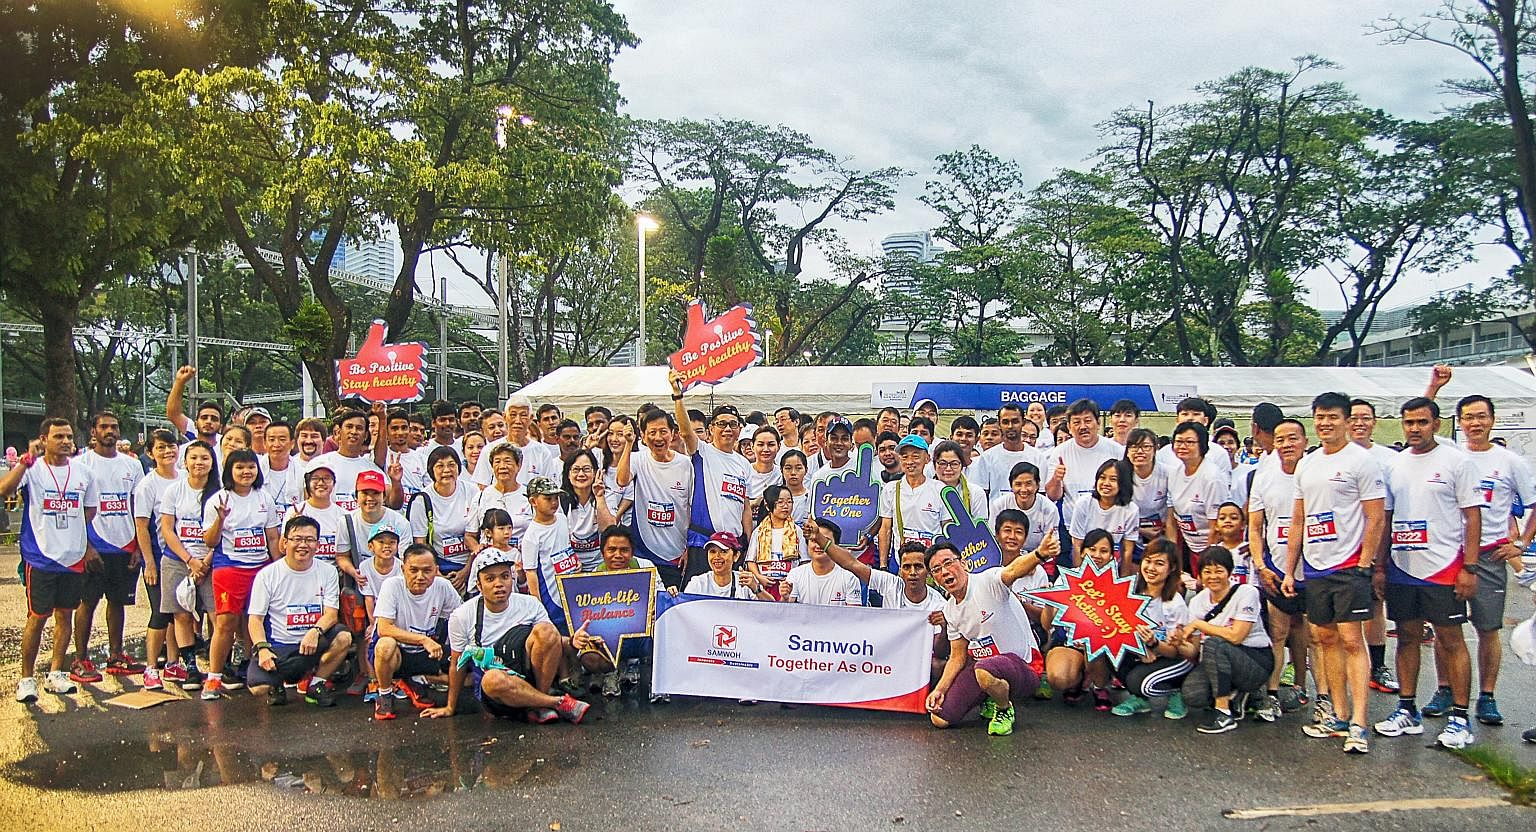 Samwoh employees at last year's ST Run. The firm is participating in the event for the second year running.